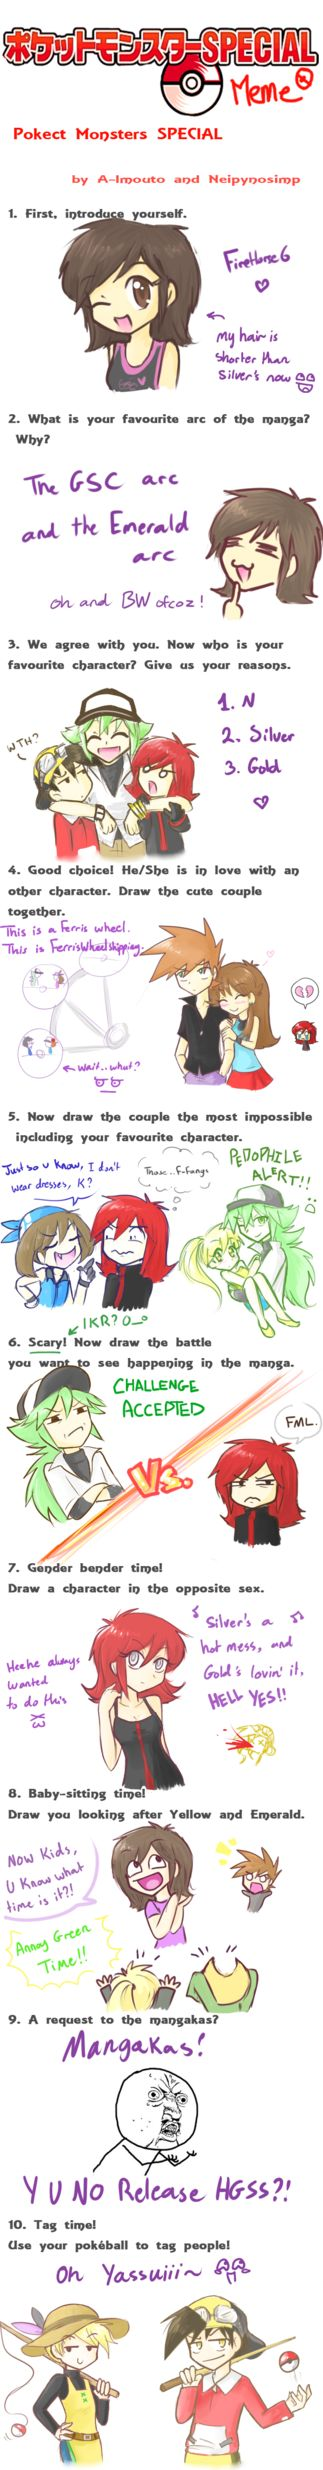 PMS Meme by: FH6 by firehorse6 on DeviantArt